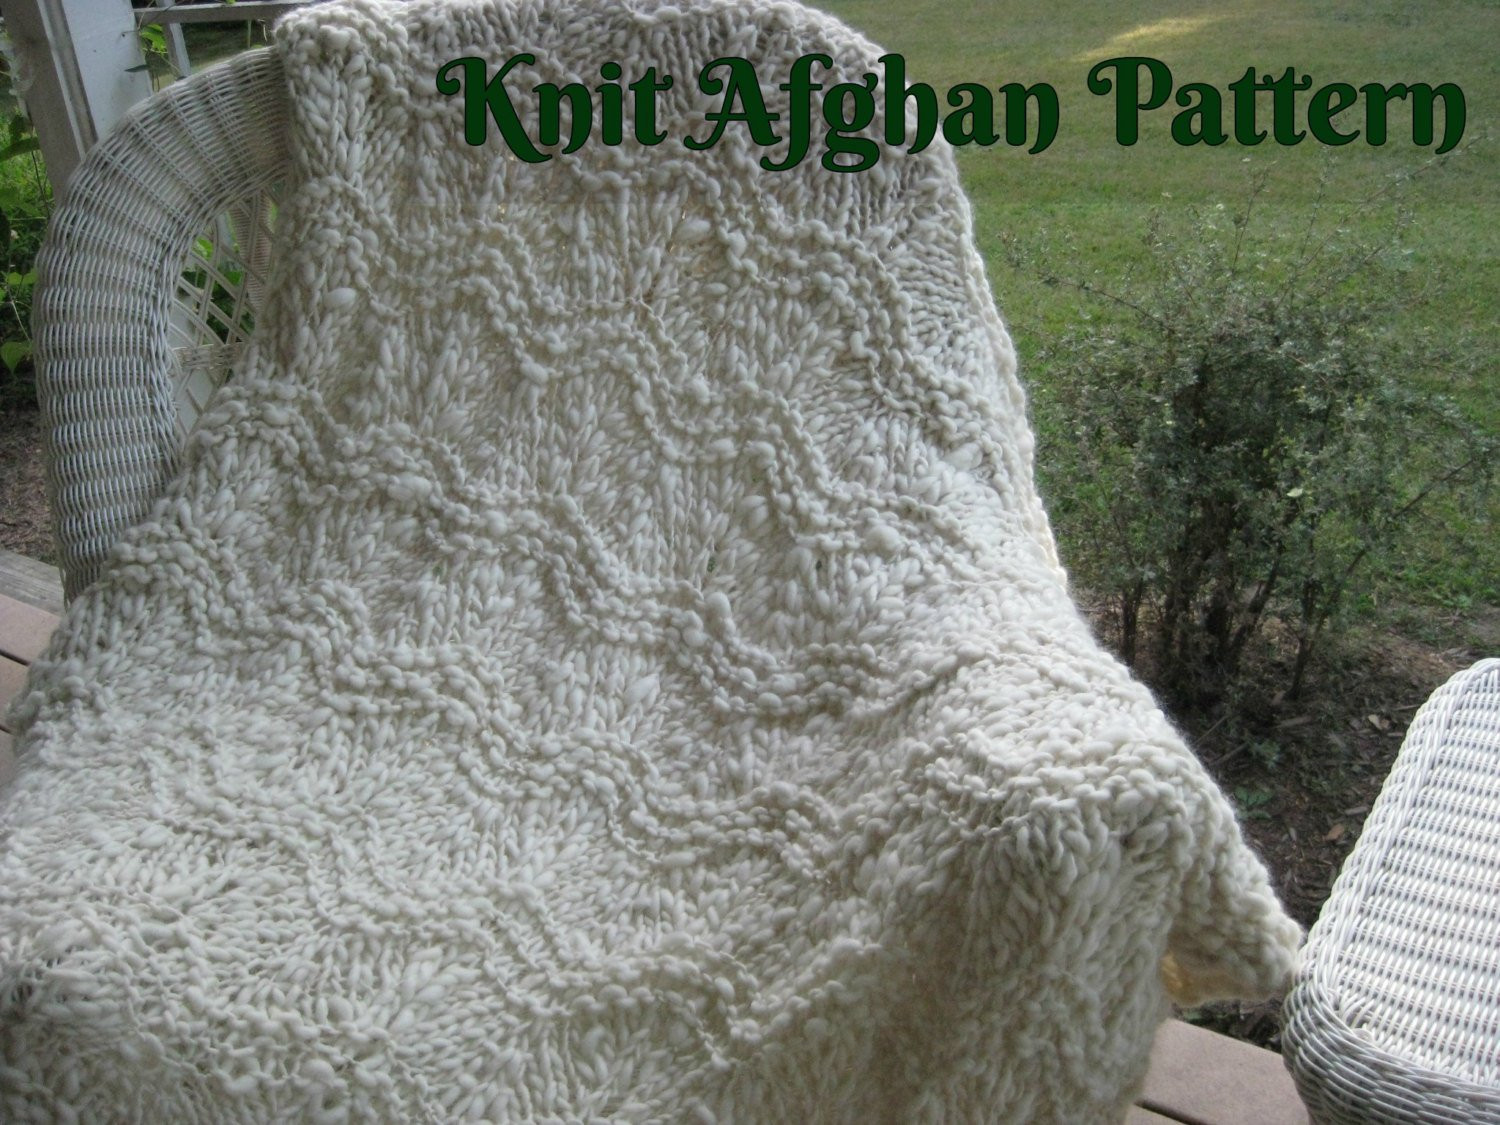 Bulky Yarn Afghan Patterns Lovely Knit Afghan Pattern Bulky Afghan Pattern Handspun Yarn Knit Of Innovative 43 Ideas Bulky Yarn Afghan Patterns